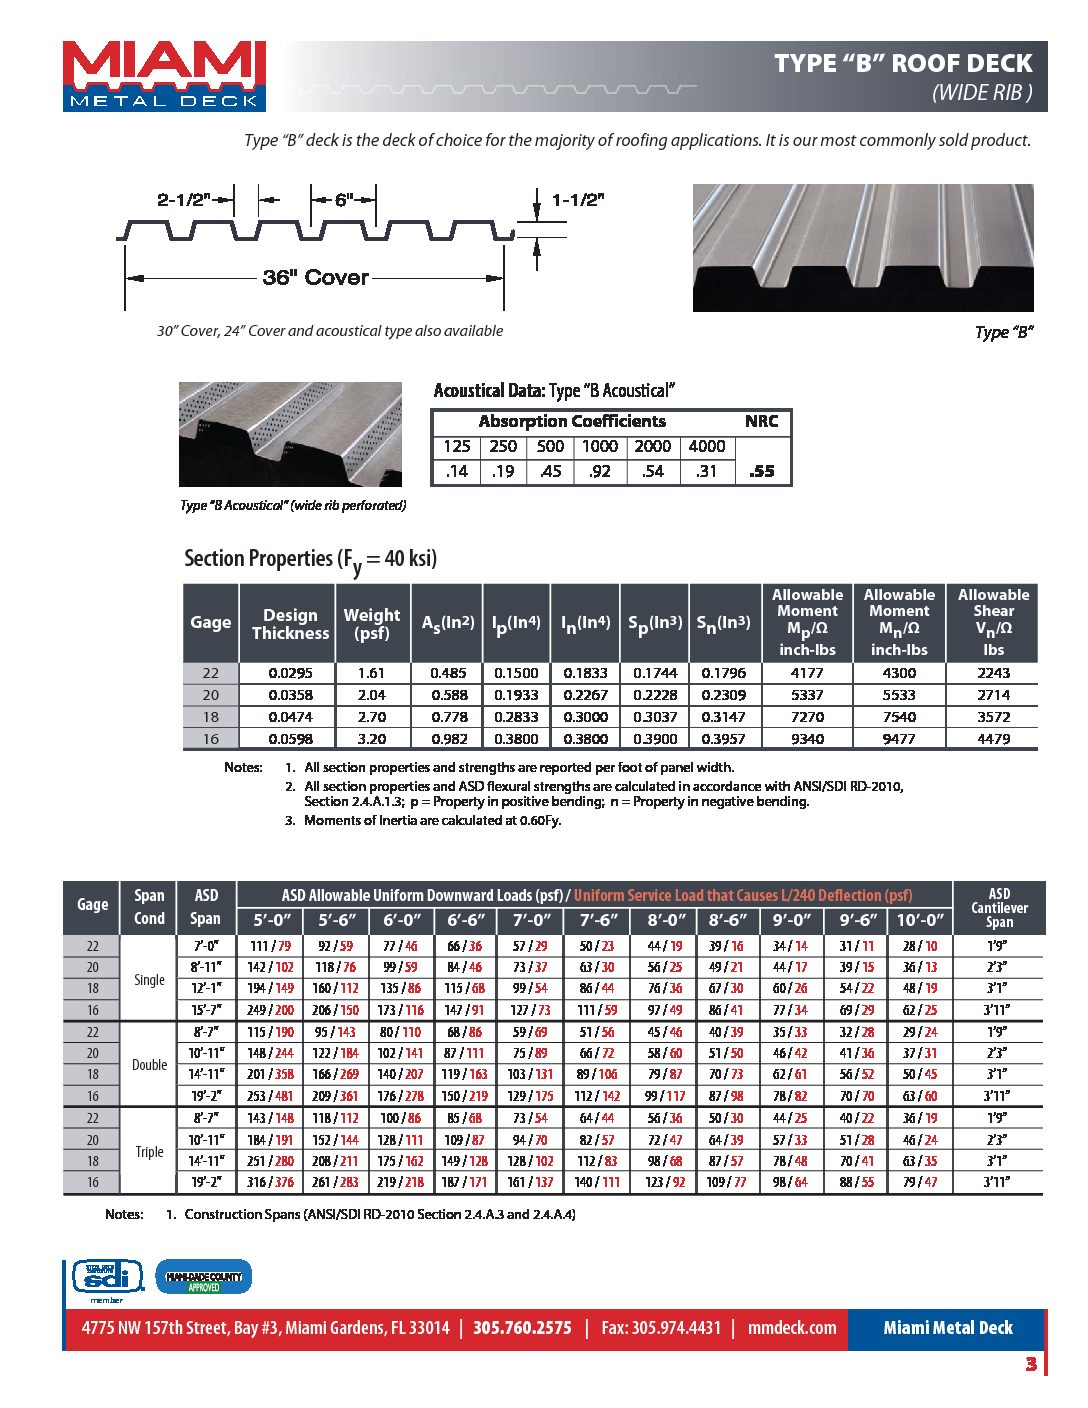 Type B Roof Deck Tables and Load-Span Resources Guide